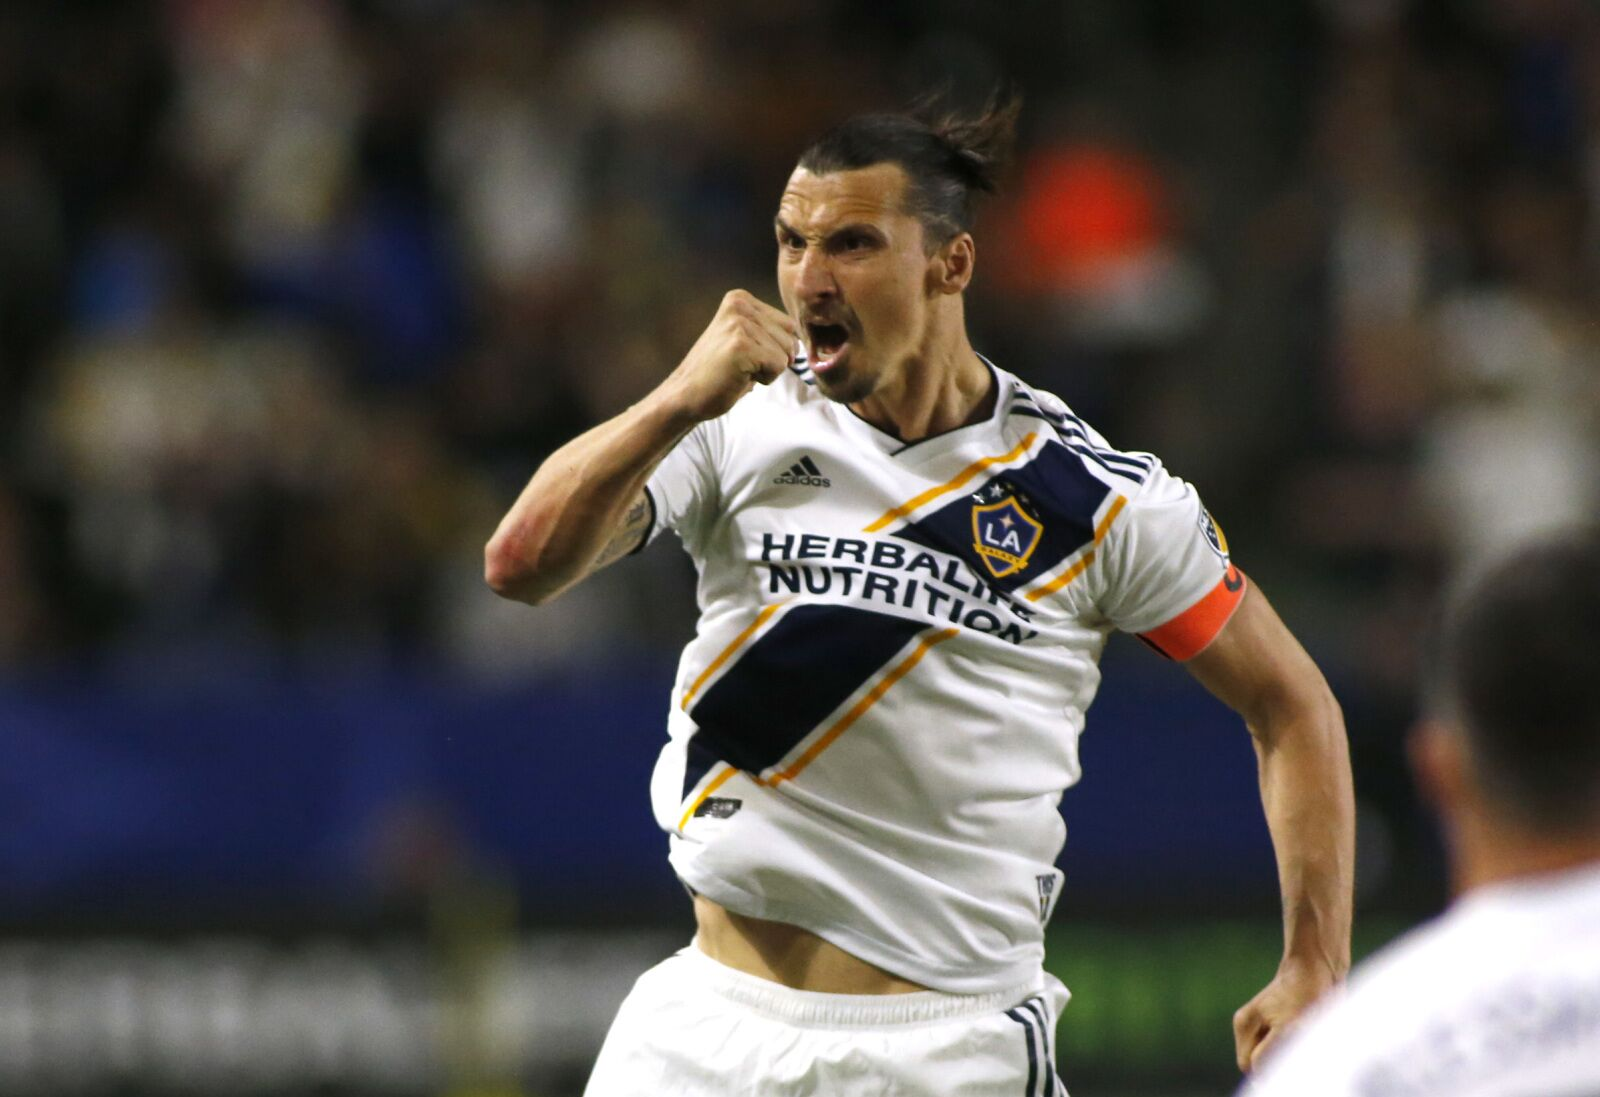 5755d21e2 Vancouver Whitecaps Vs LA Galaxy: 3 things we learned – Turf no issue for  Zlatan